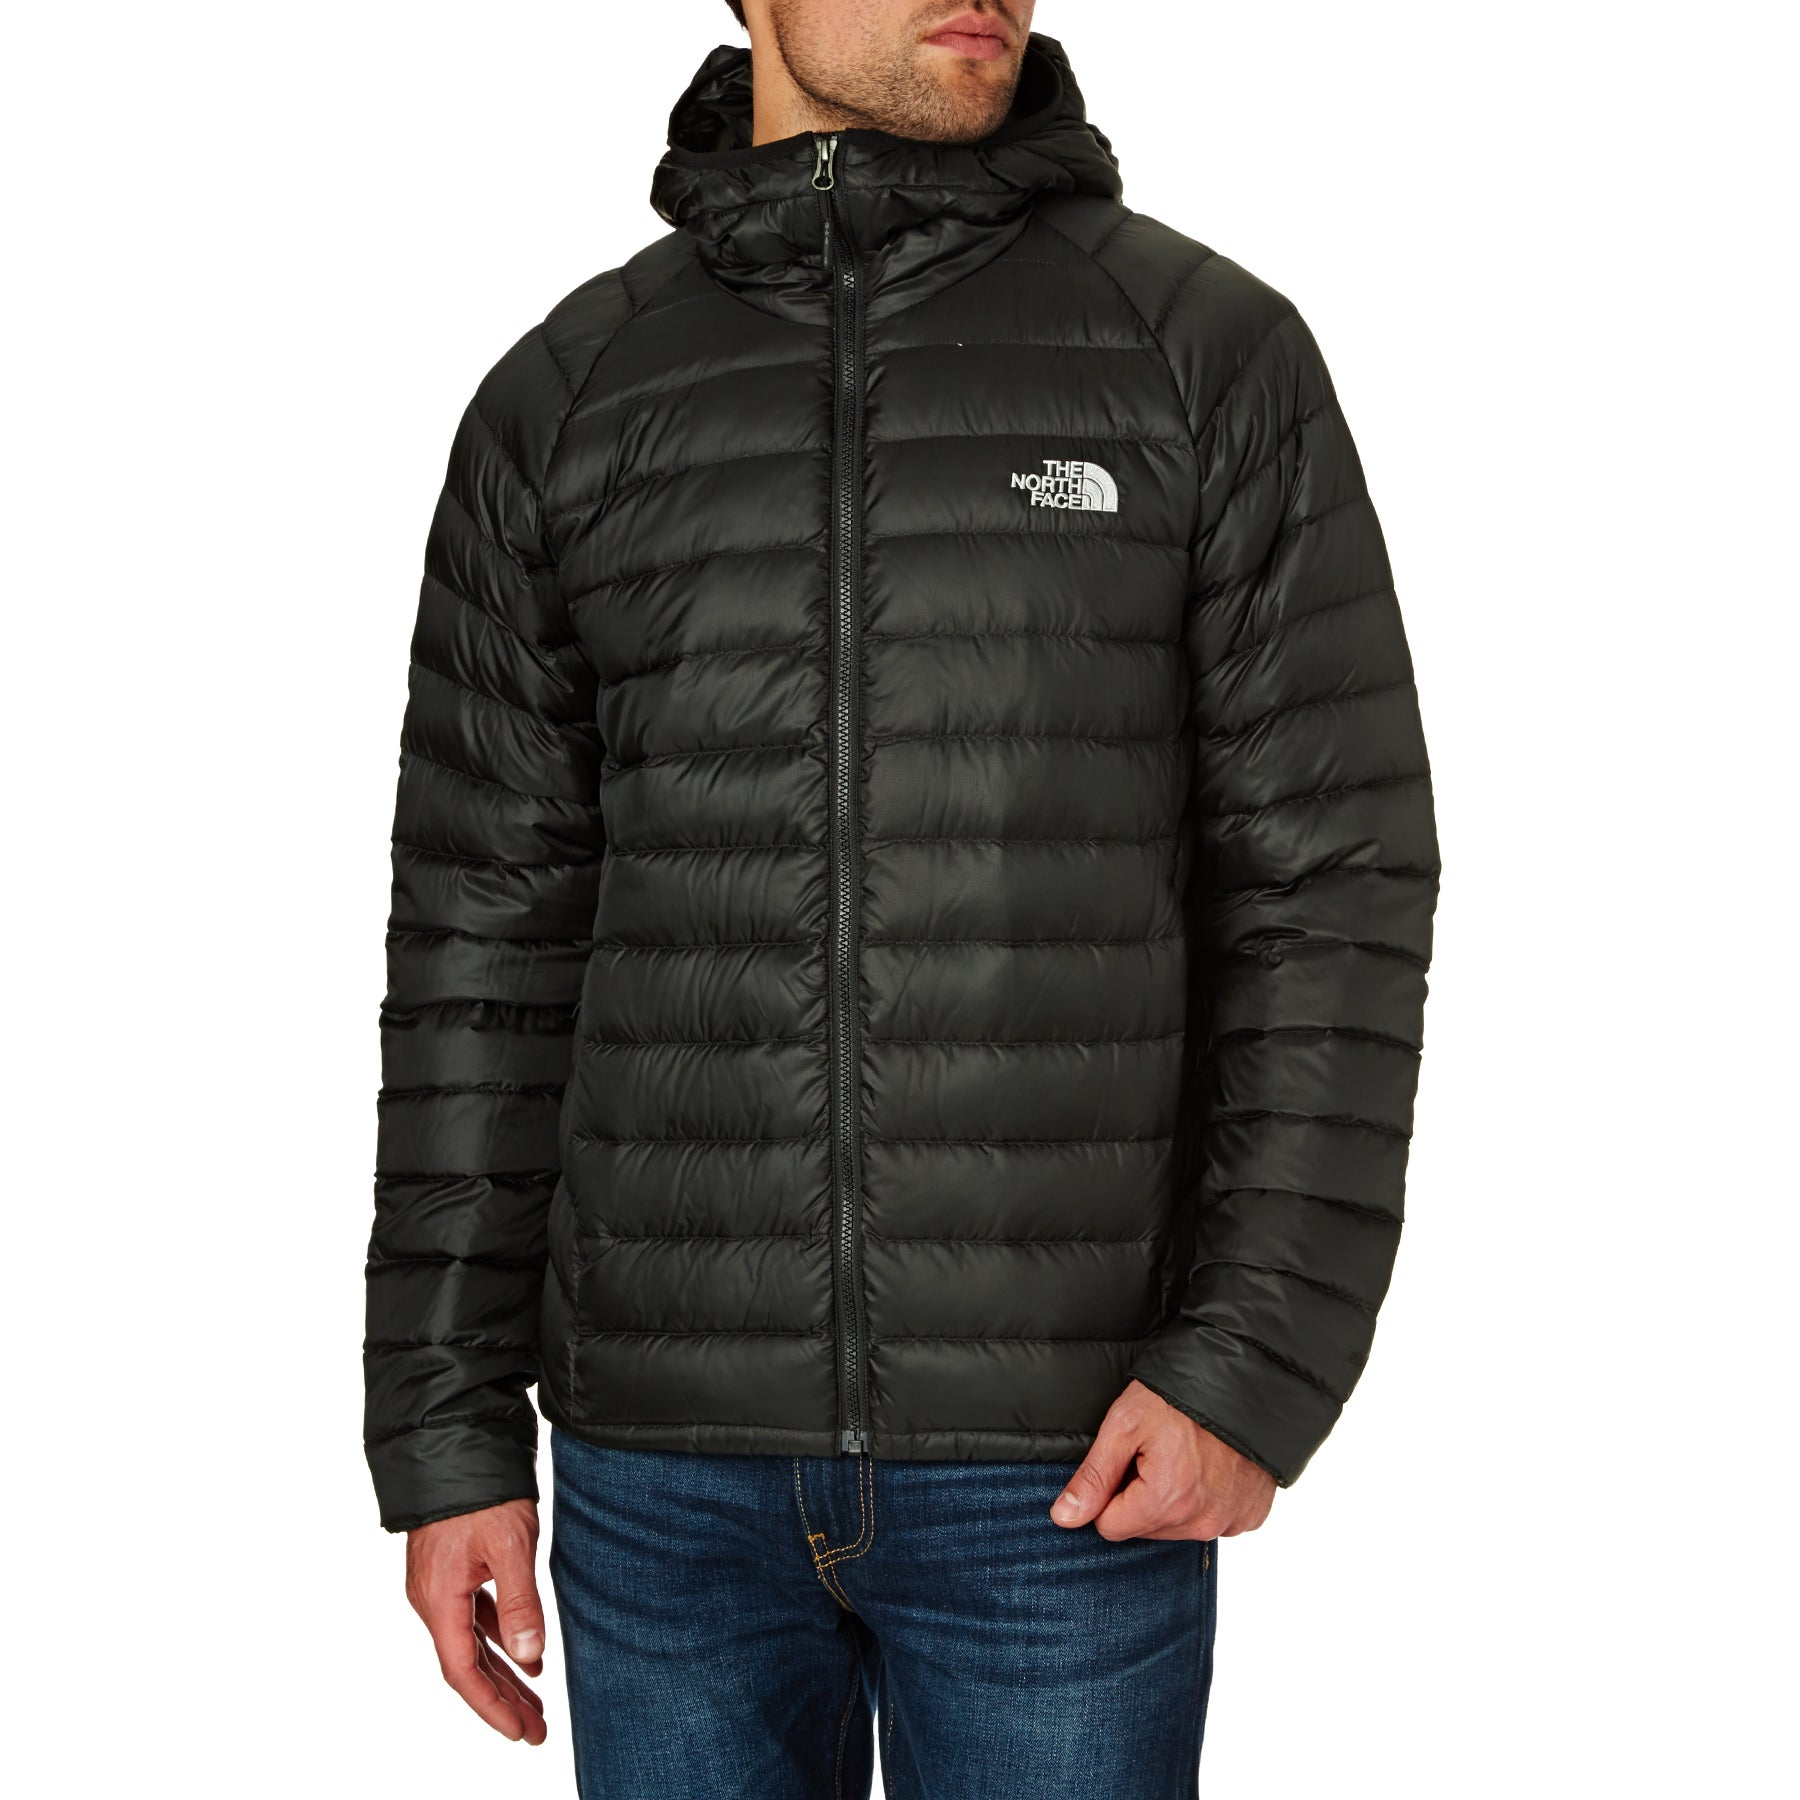 7b5d1bed5c97 North Face Trevail Hooded Down Jacket available from Surfdome